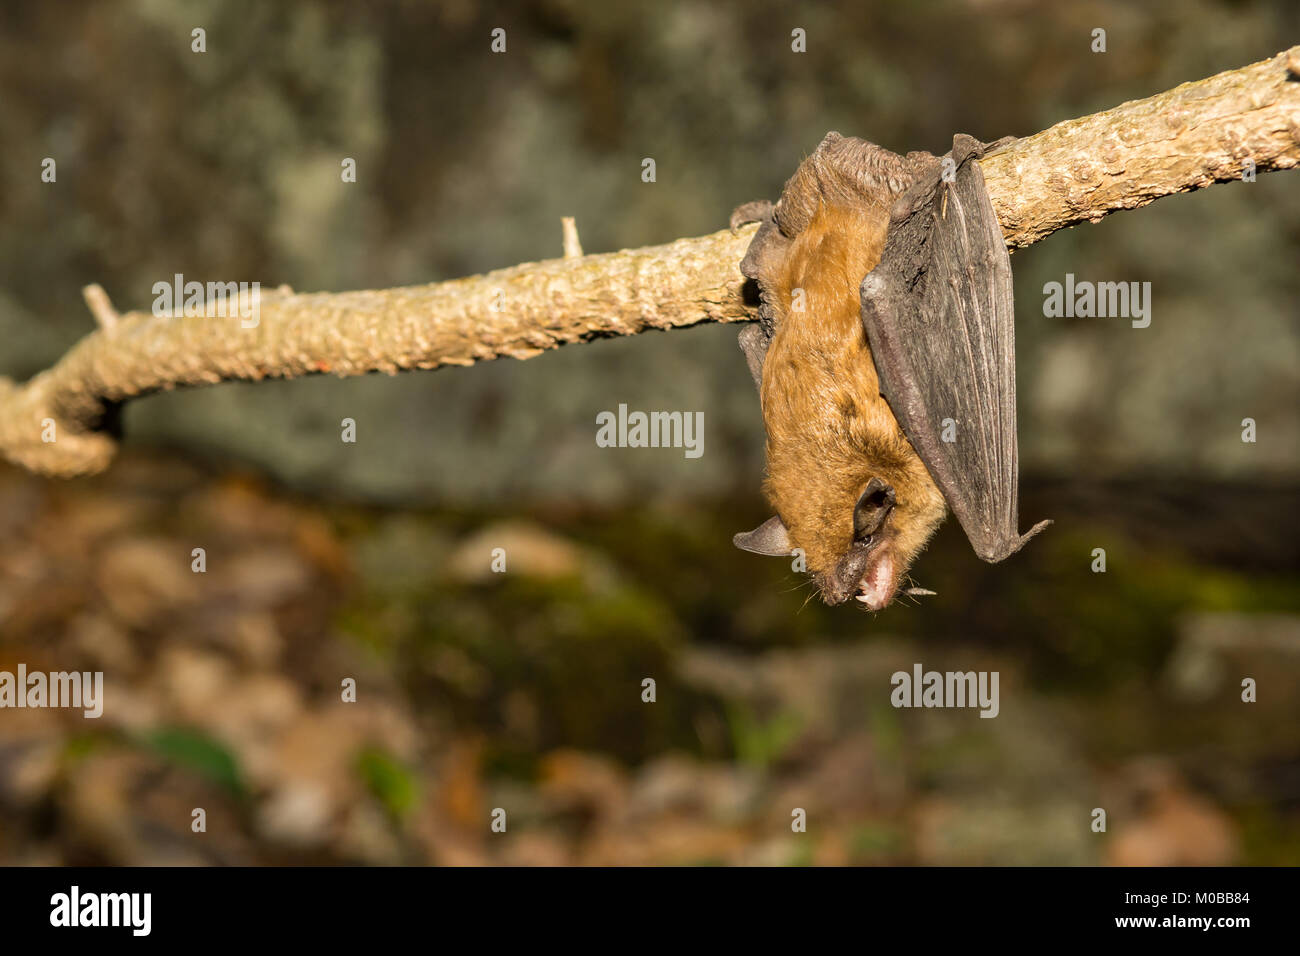 A Big Brown Bat hanging from a vine just outside the cave entrance. - Stock Image